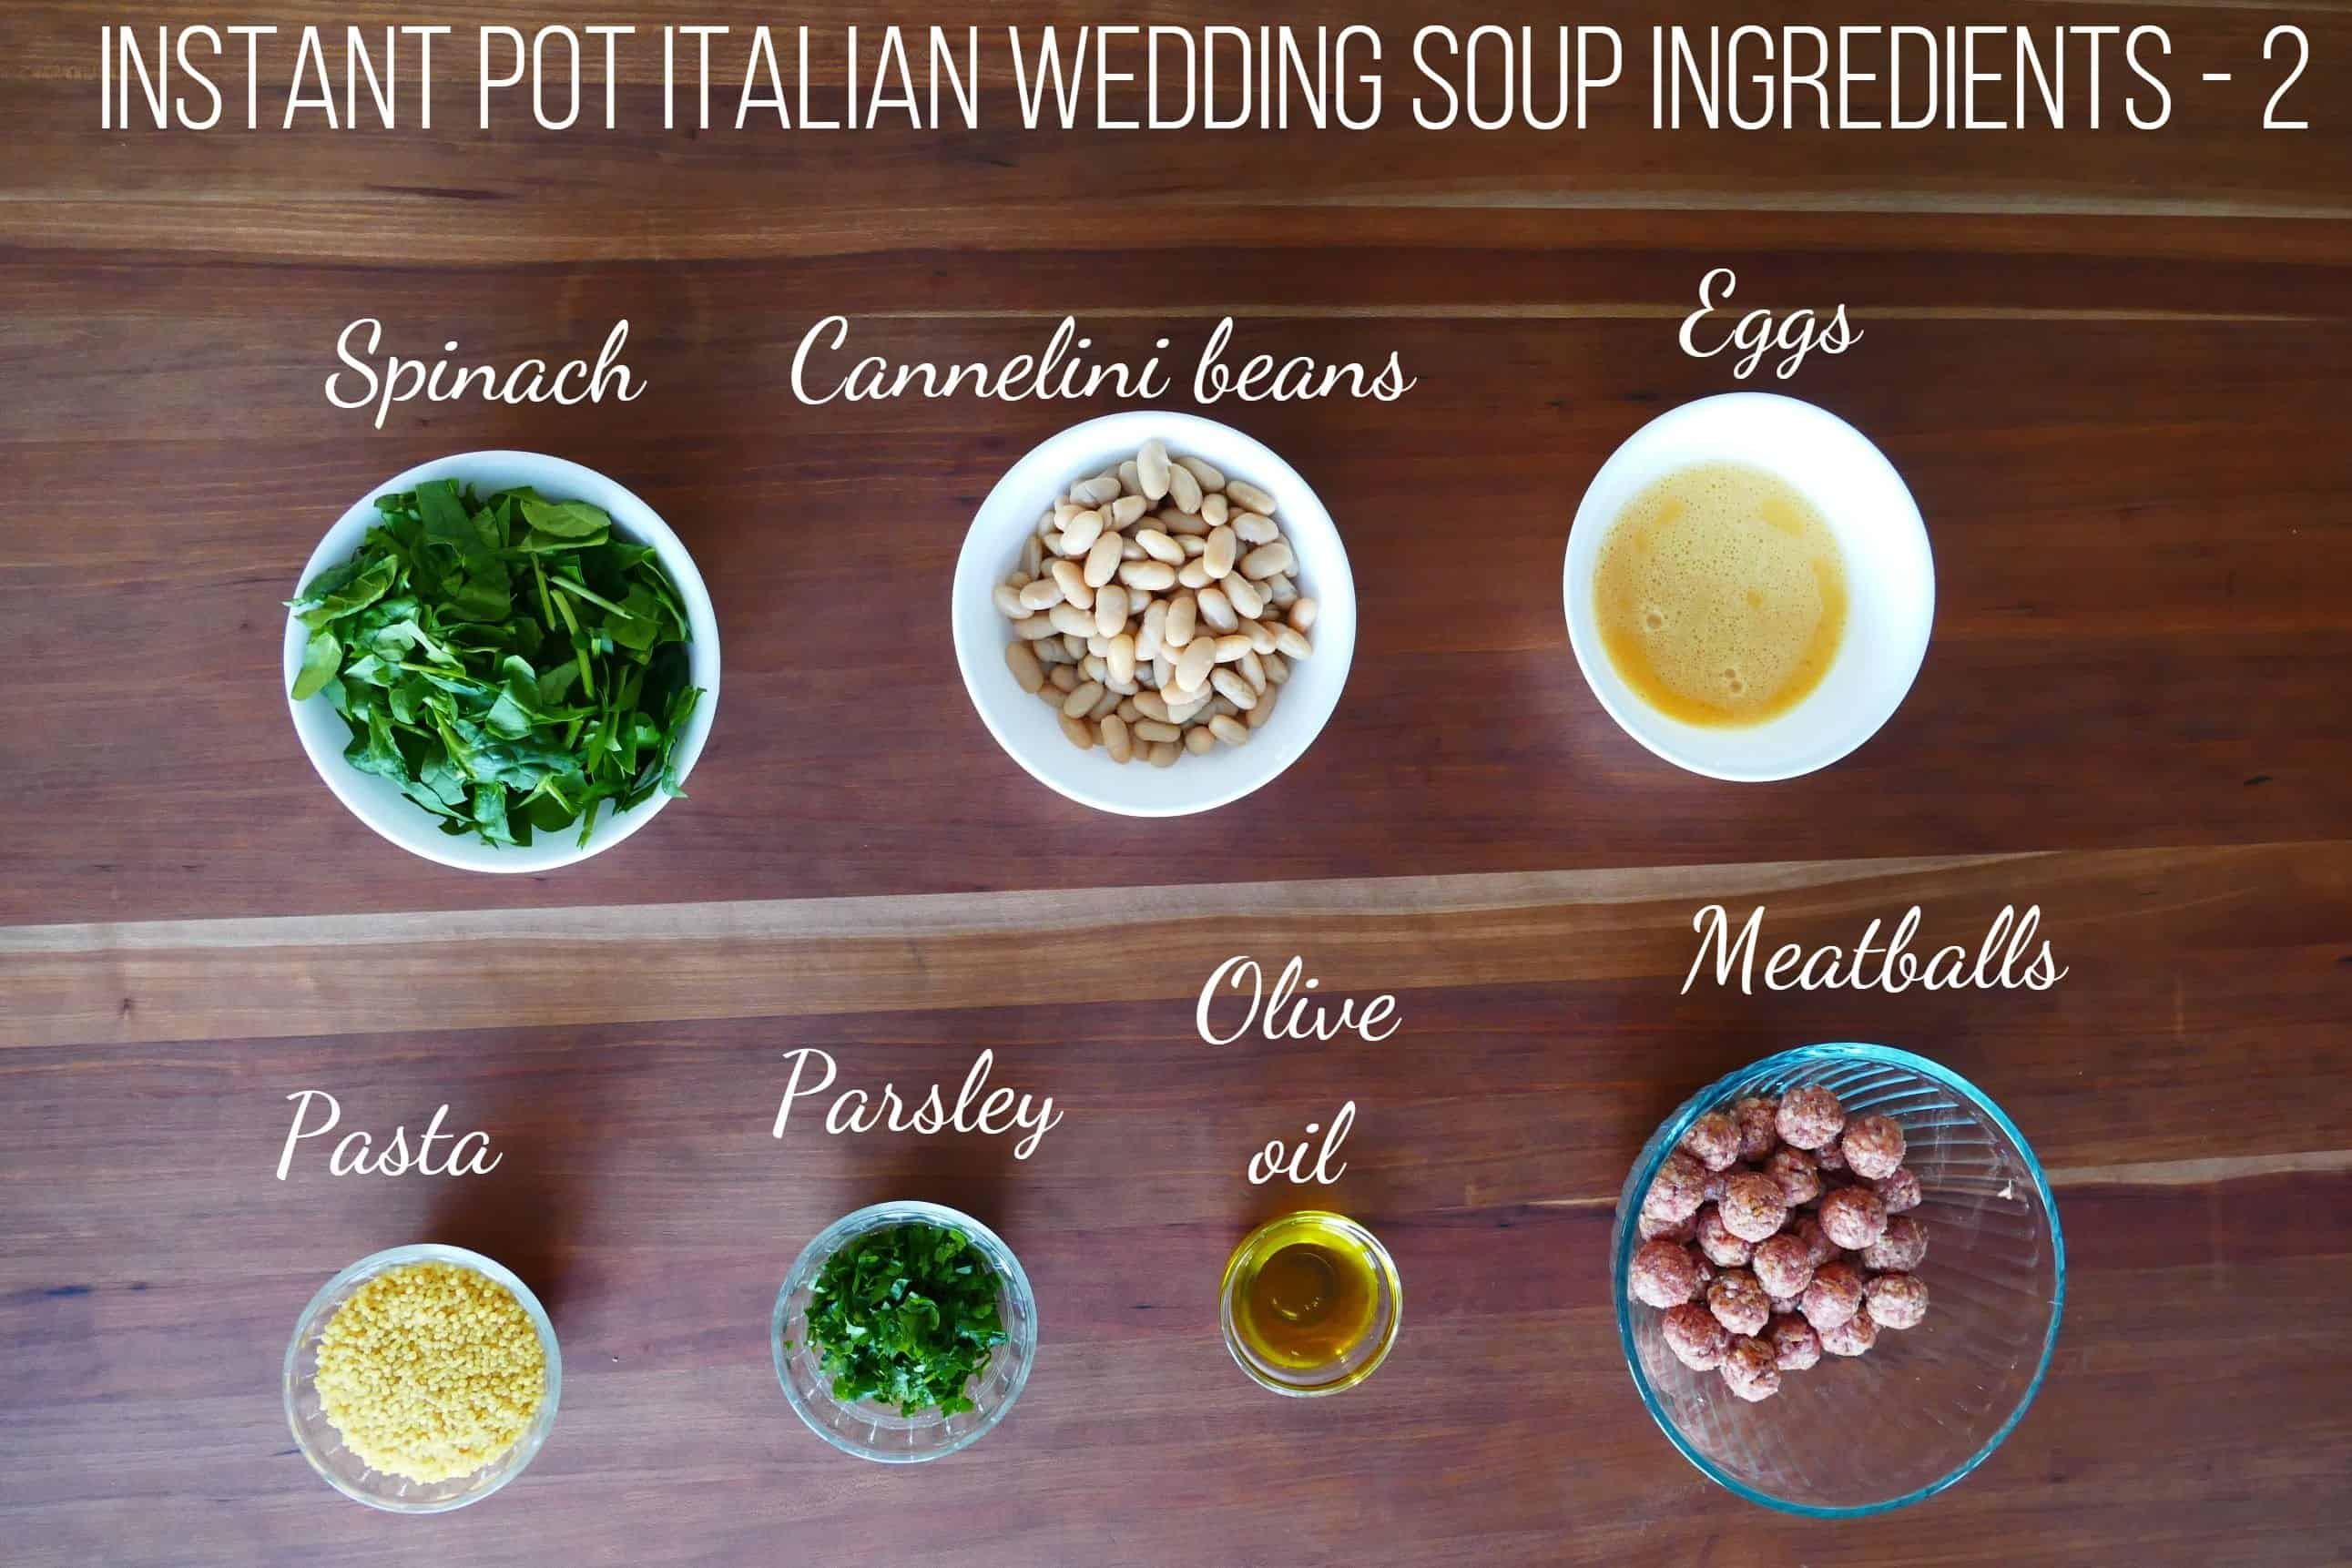 Instant Pot Italian Wedding Soup Ingredients 2 - spinach, cannelini beans, eggs, pasta, parsley, olive oil, meatballs - Paint the Kitchen Red